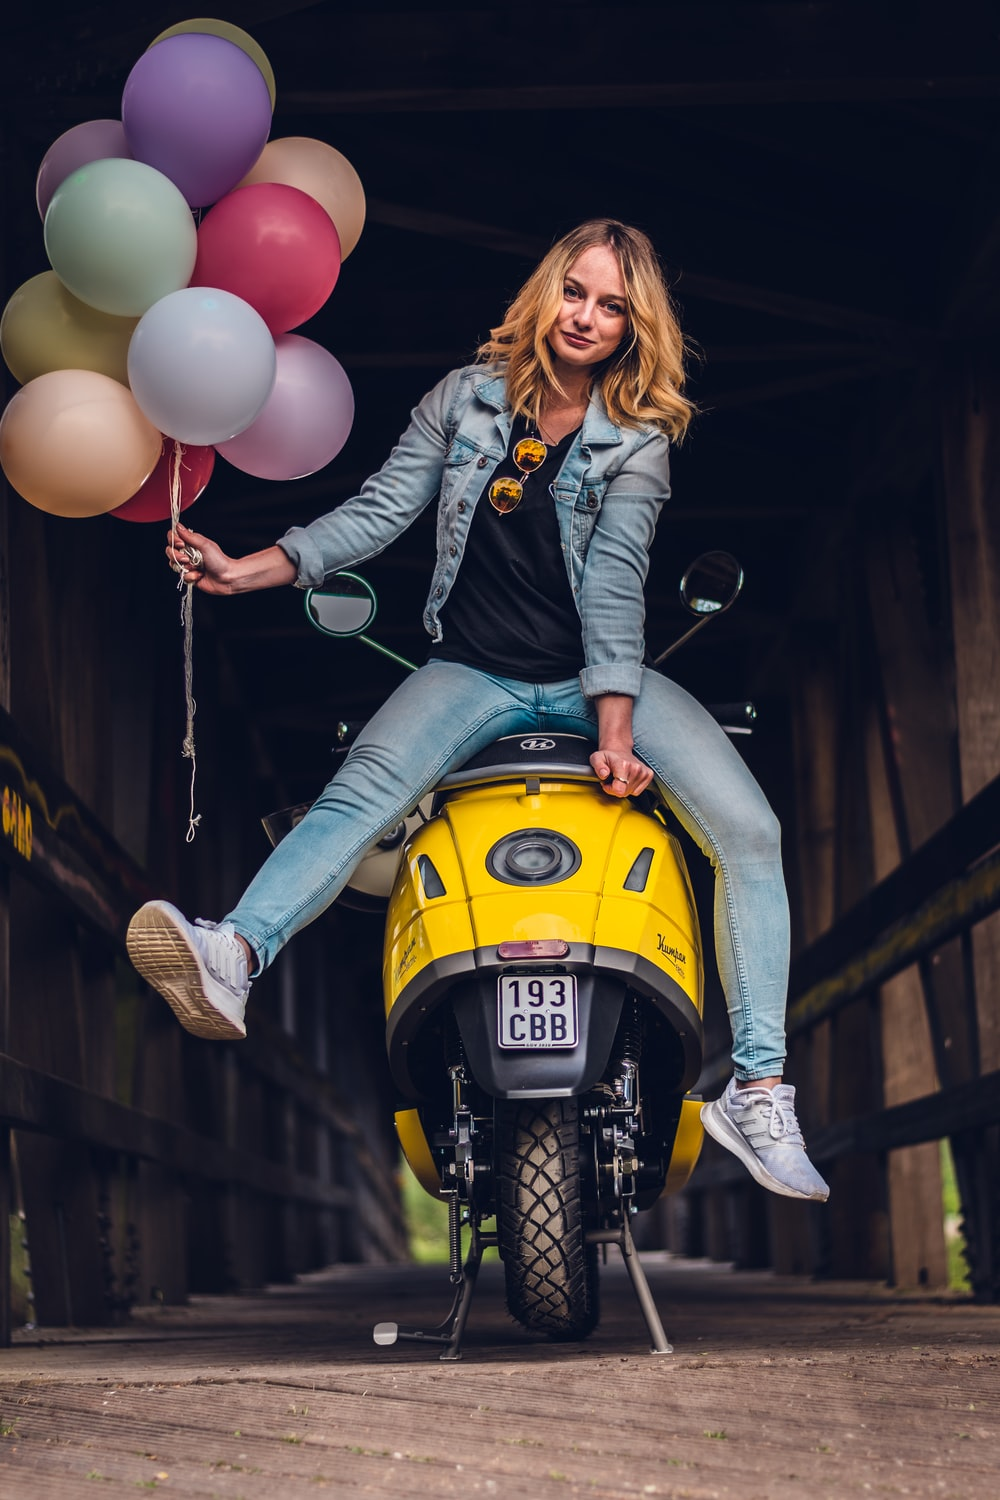 woman in black leather jacket and blue denim jeans riding yellow motorcycle holding balloons